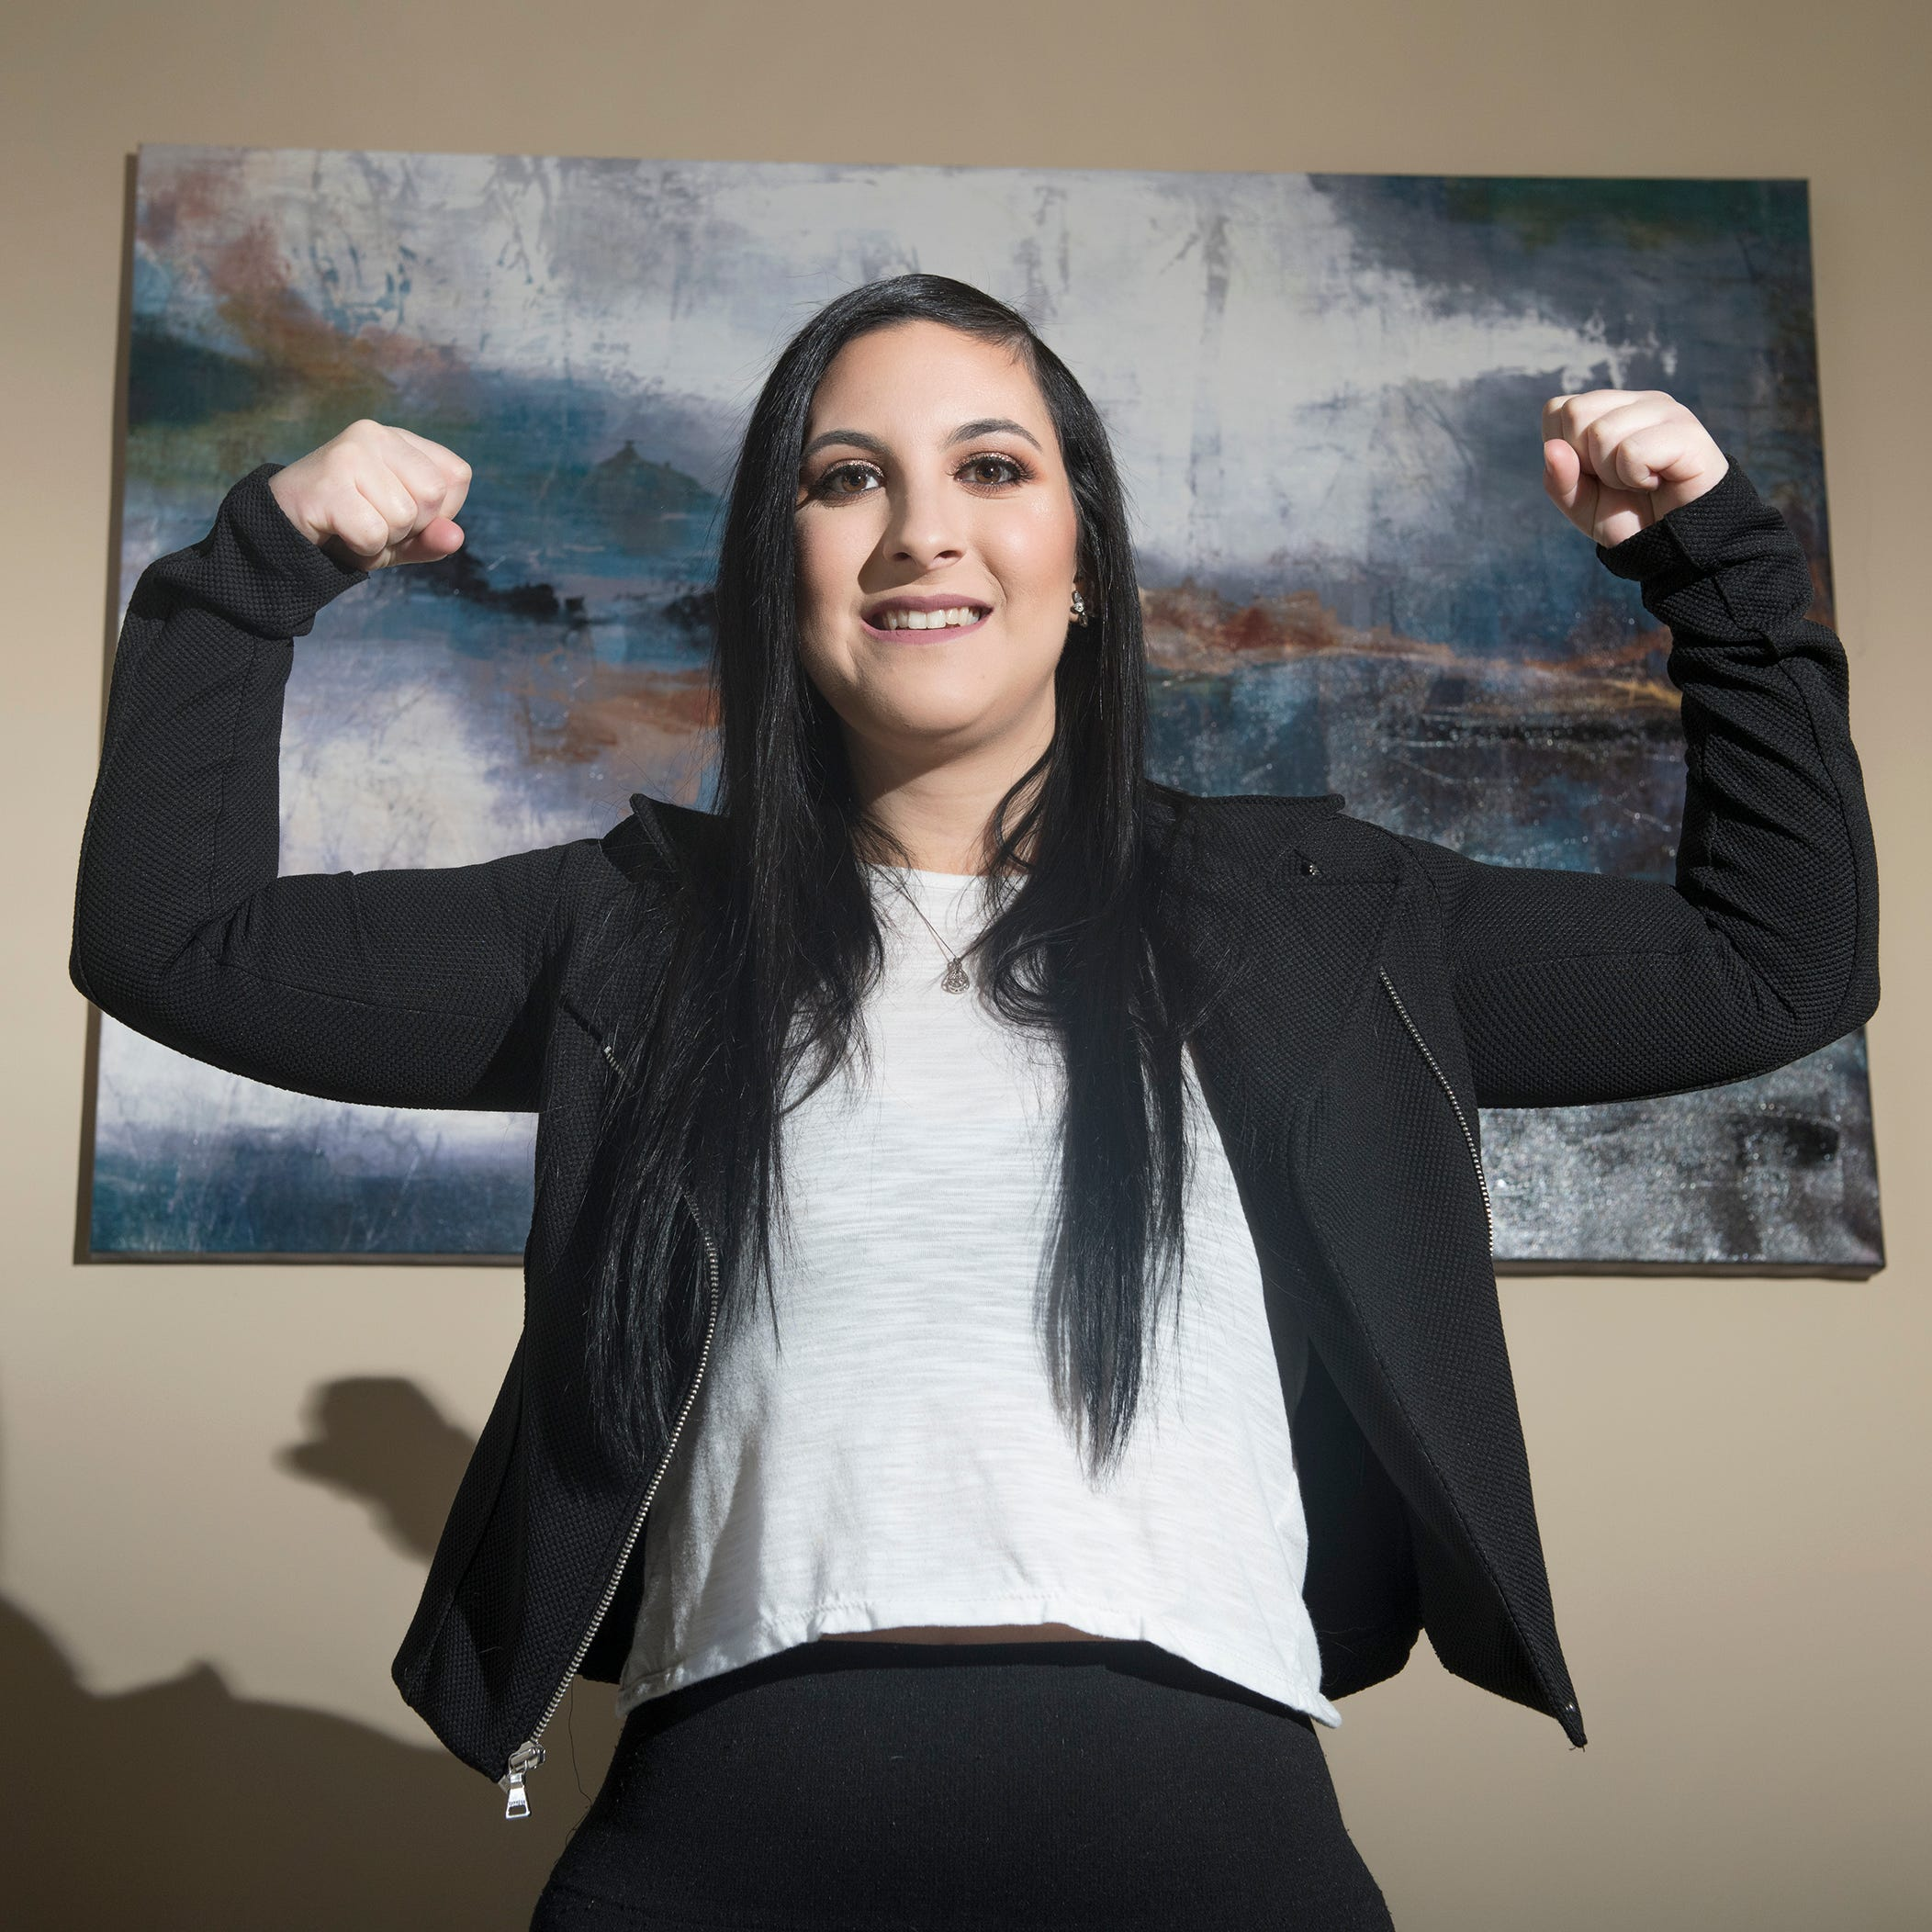 Deptford bodybuilder credits Kentucky surgeons for saving her life with an experimental treatment